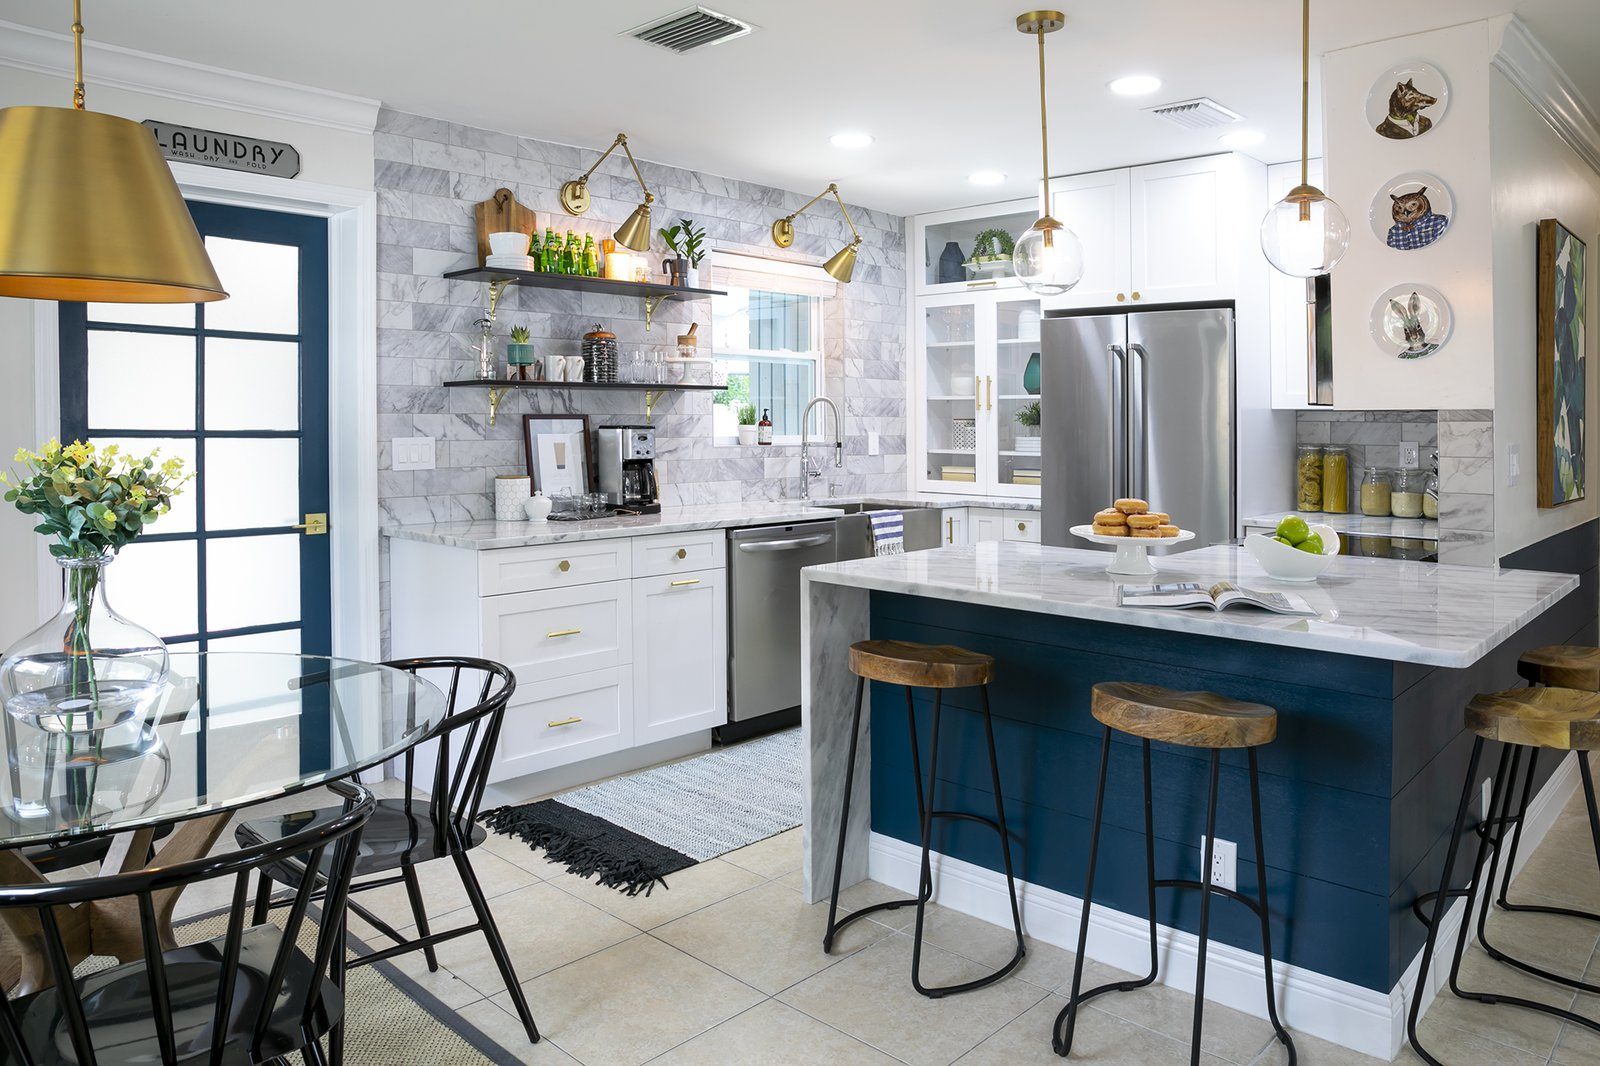 Photo 2 of 12 in Budget Breakdown: An '80s Kitchen Gets a ...